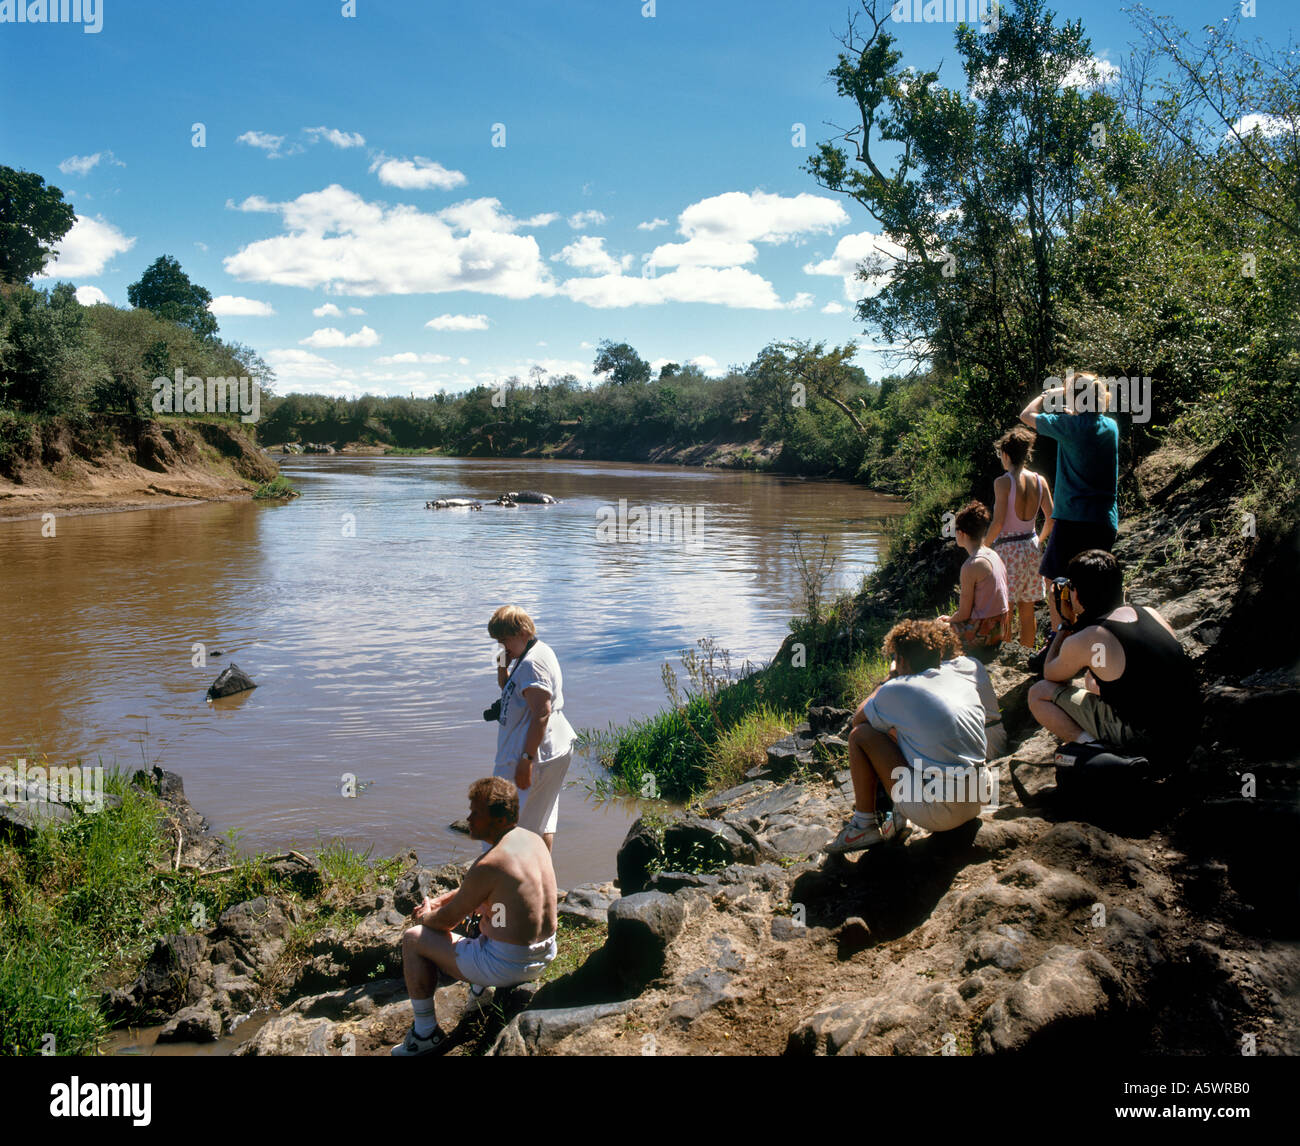 Tourists watching Hippopotamuses in Mara River, Masai Mara Nature Reserve, Narok, Kenya, East Africa - Stock Image